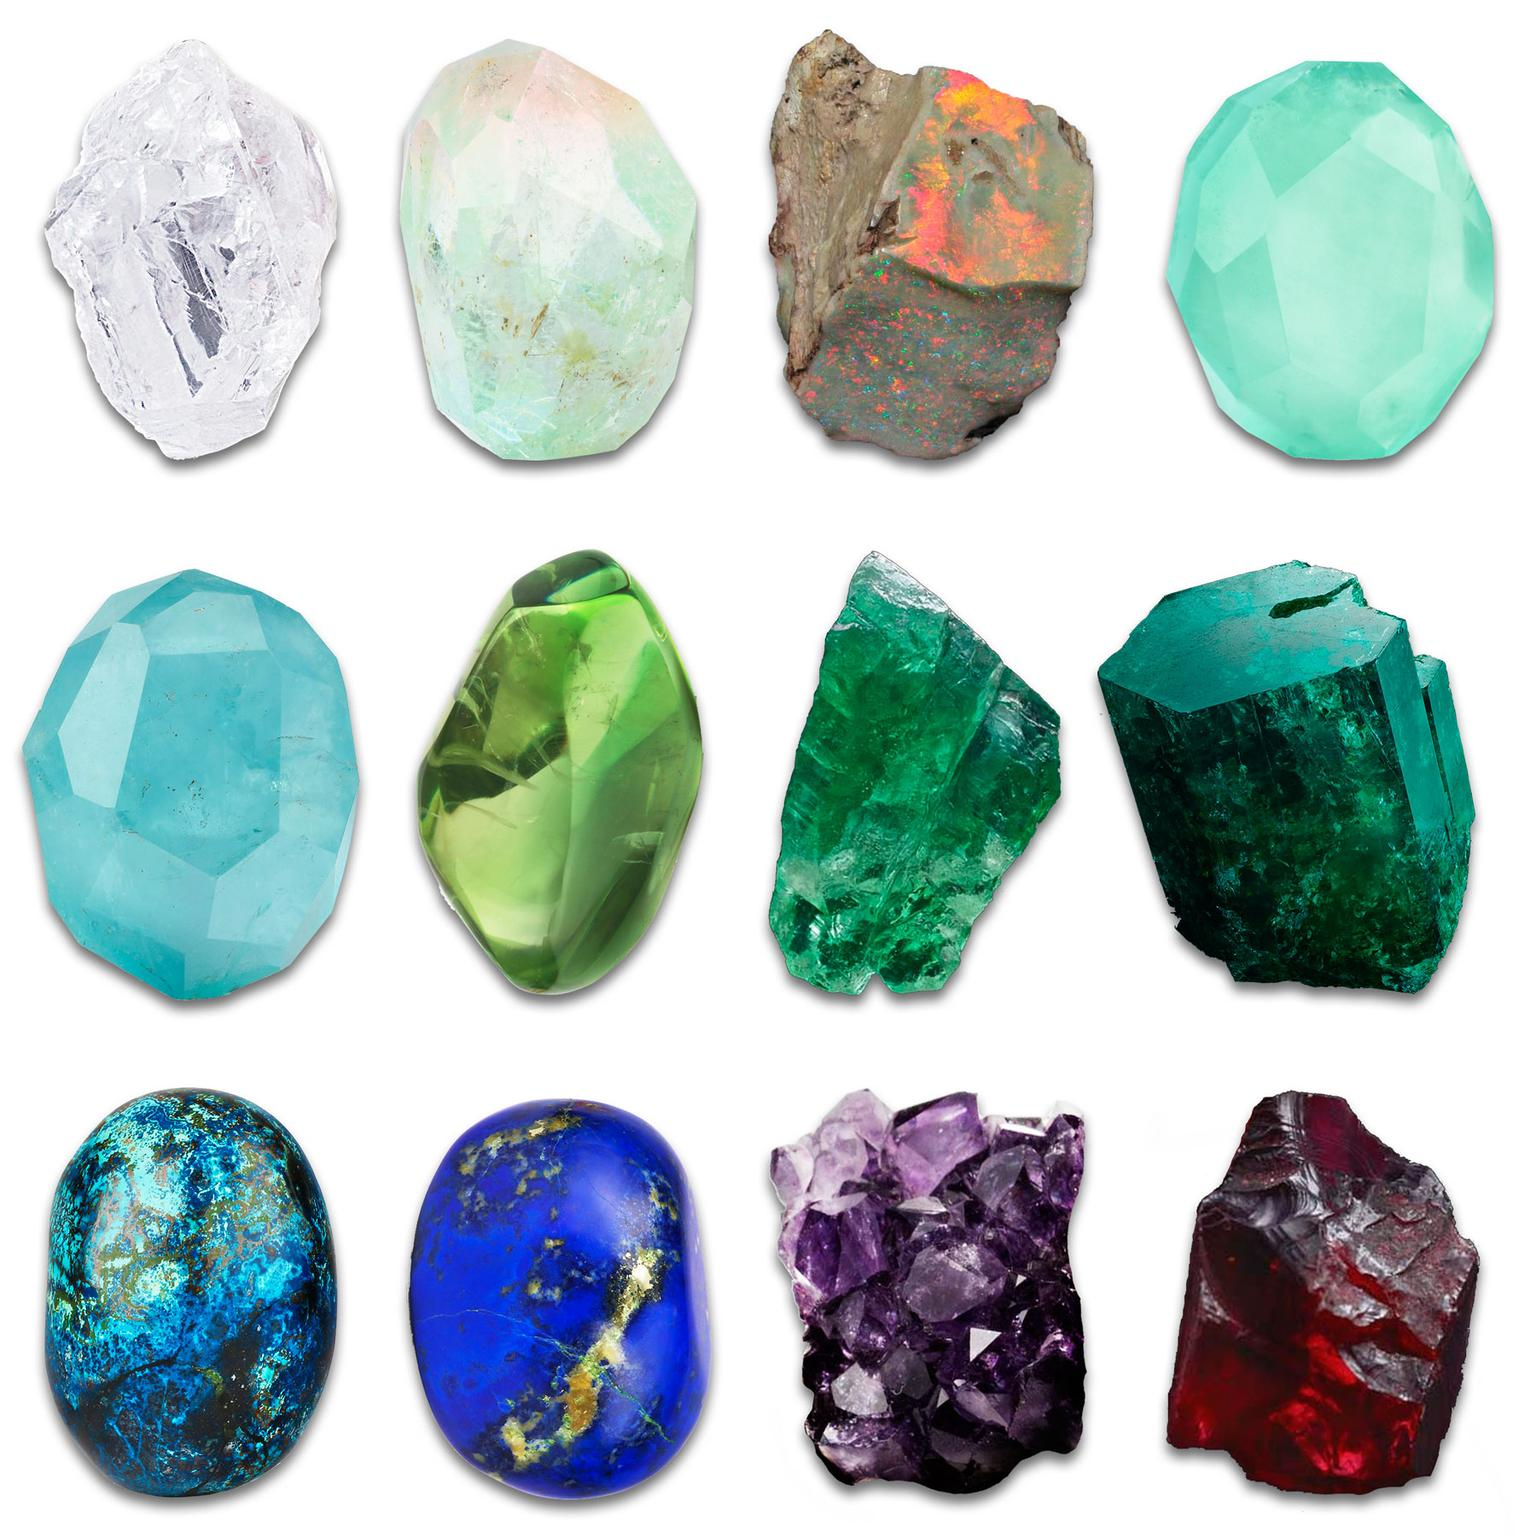 Gemstones That Are Widely Used